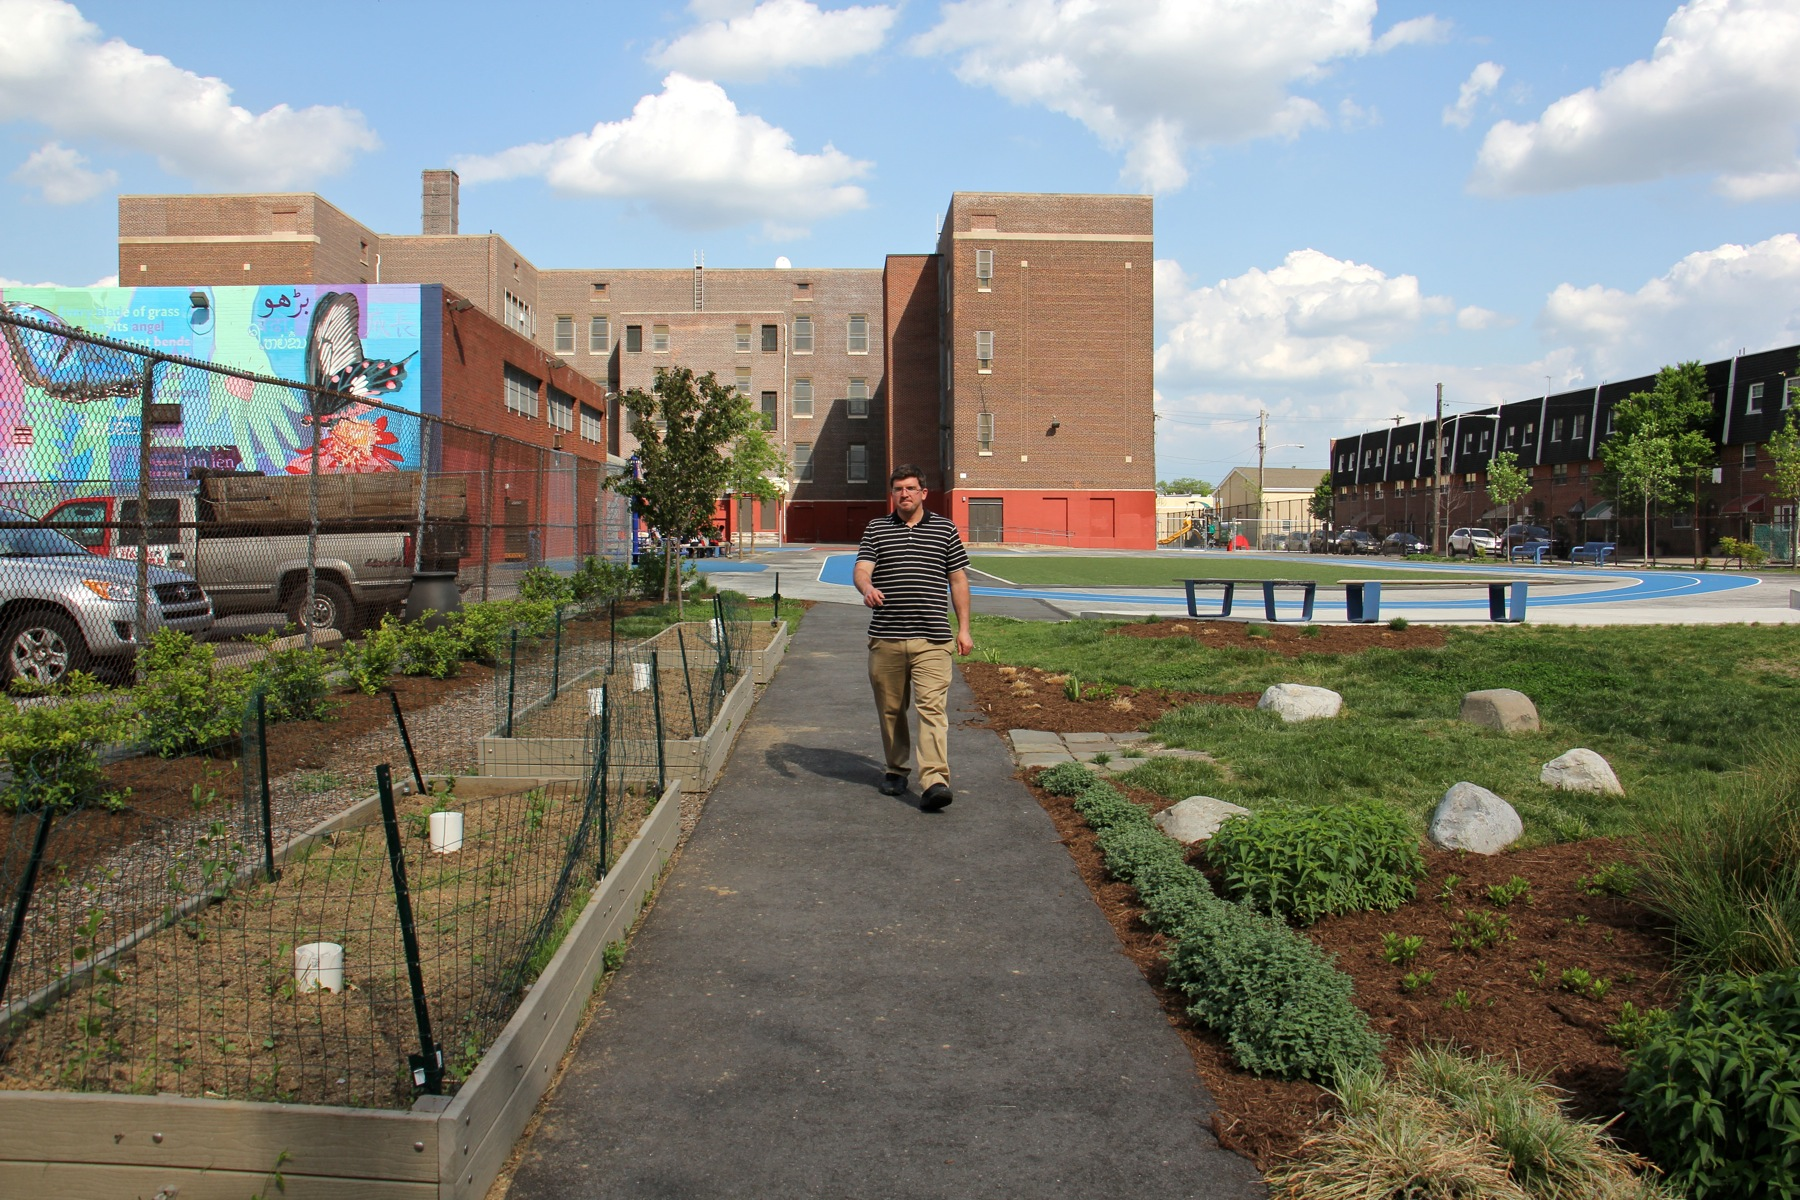 Raised garden beds are used by Taggart School's diverse community to raise food, says Dean of Students David Hensel. (Emma Lee/WHYY)